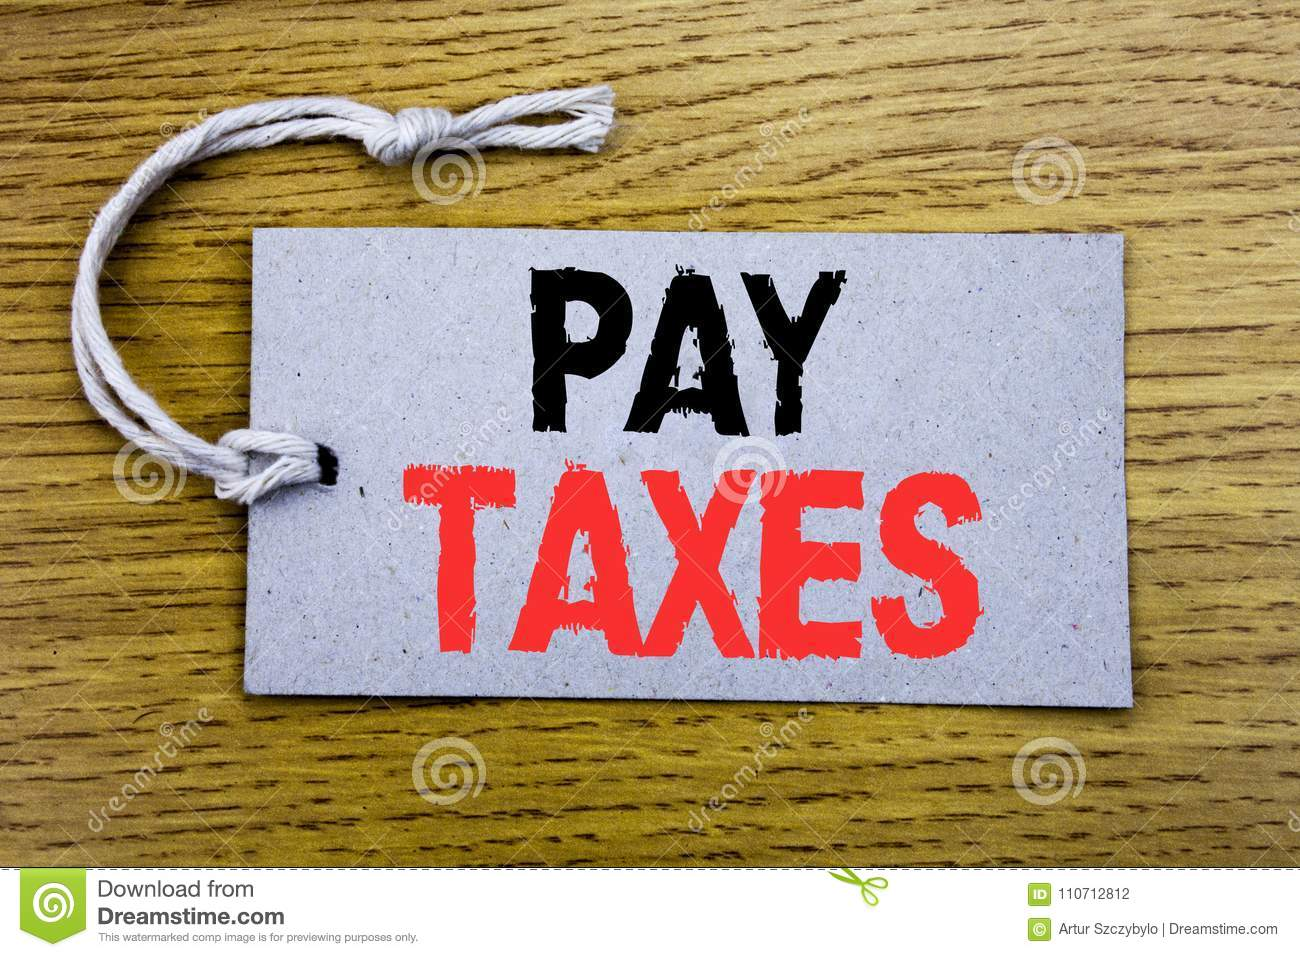 Conceptual hand writing text caption showing Pay Taxes. Business concept for Taxation Overtax Return written on price tag paper wi